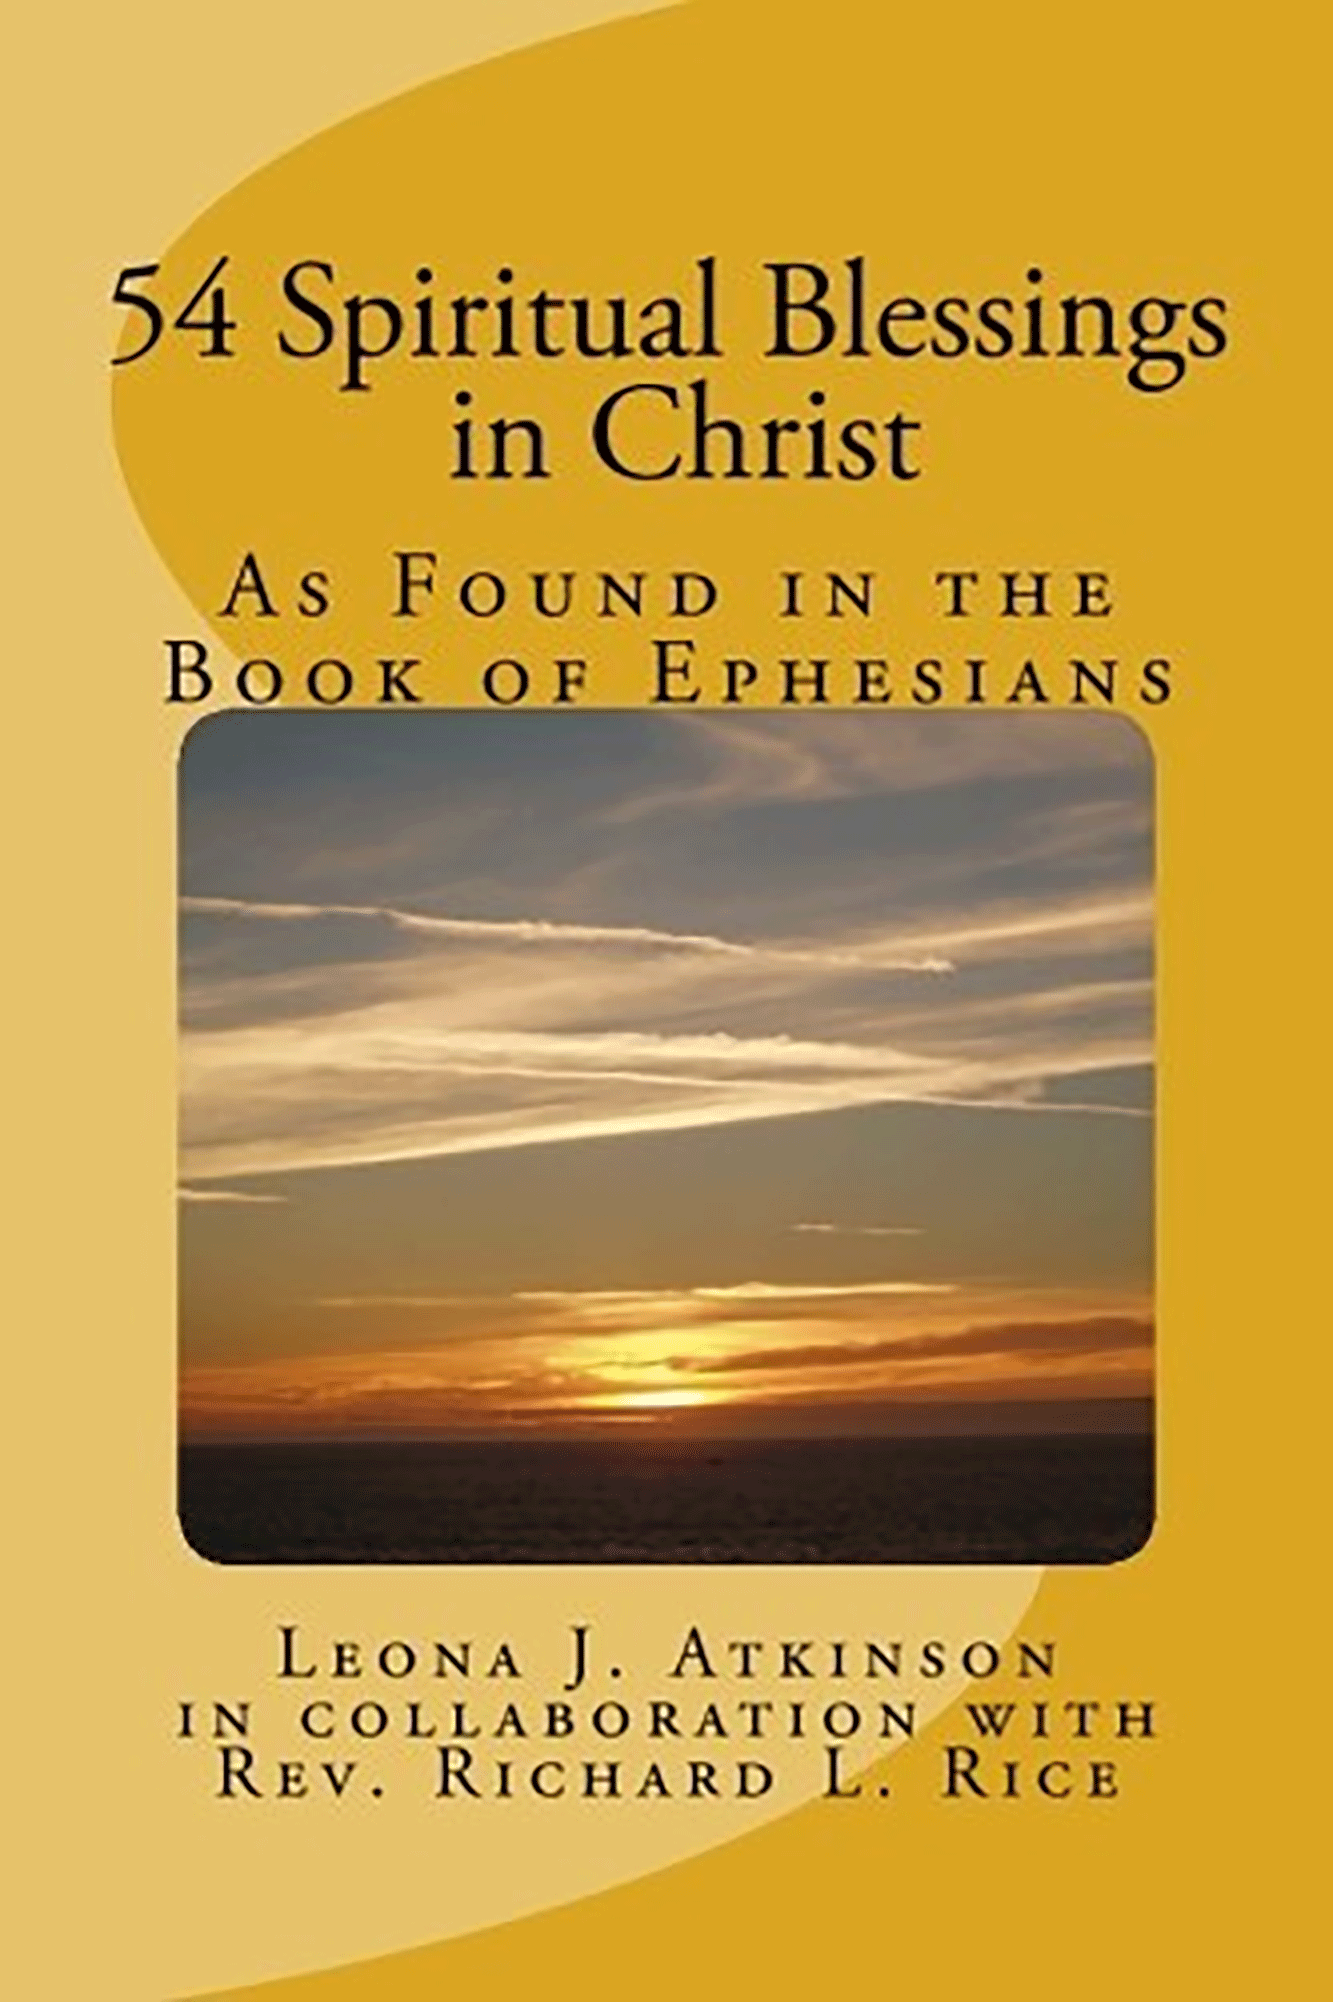 """54 Spiritual Blessings in Christ"" book cover"